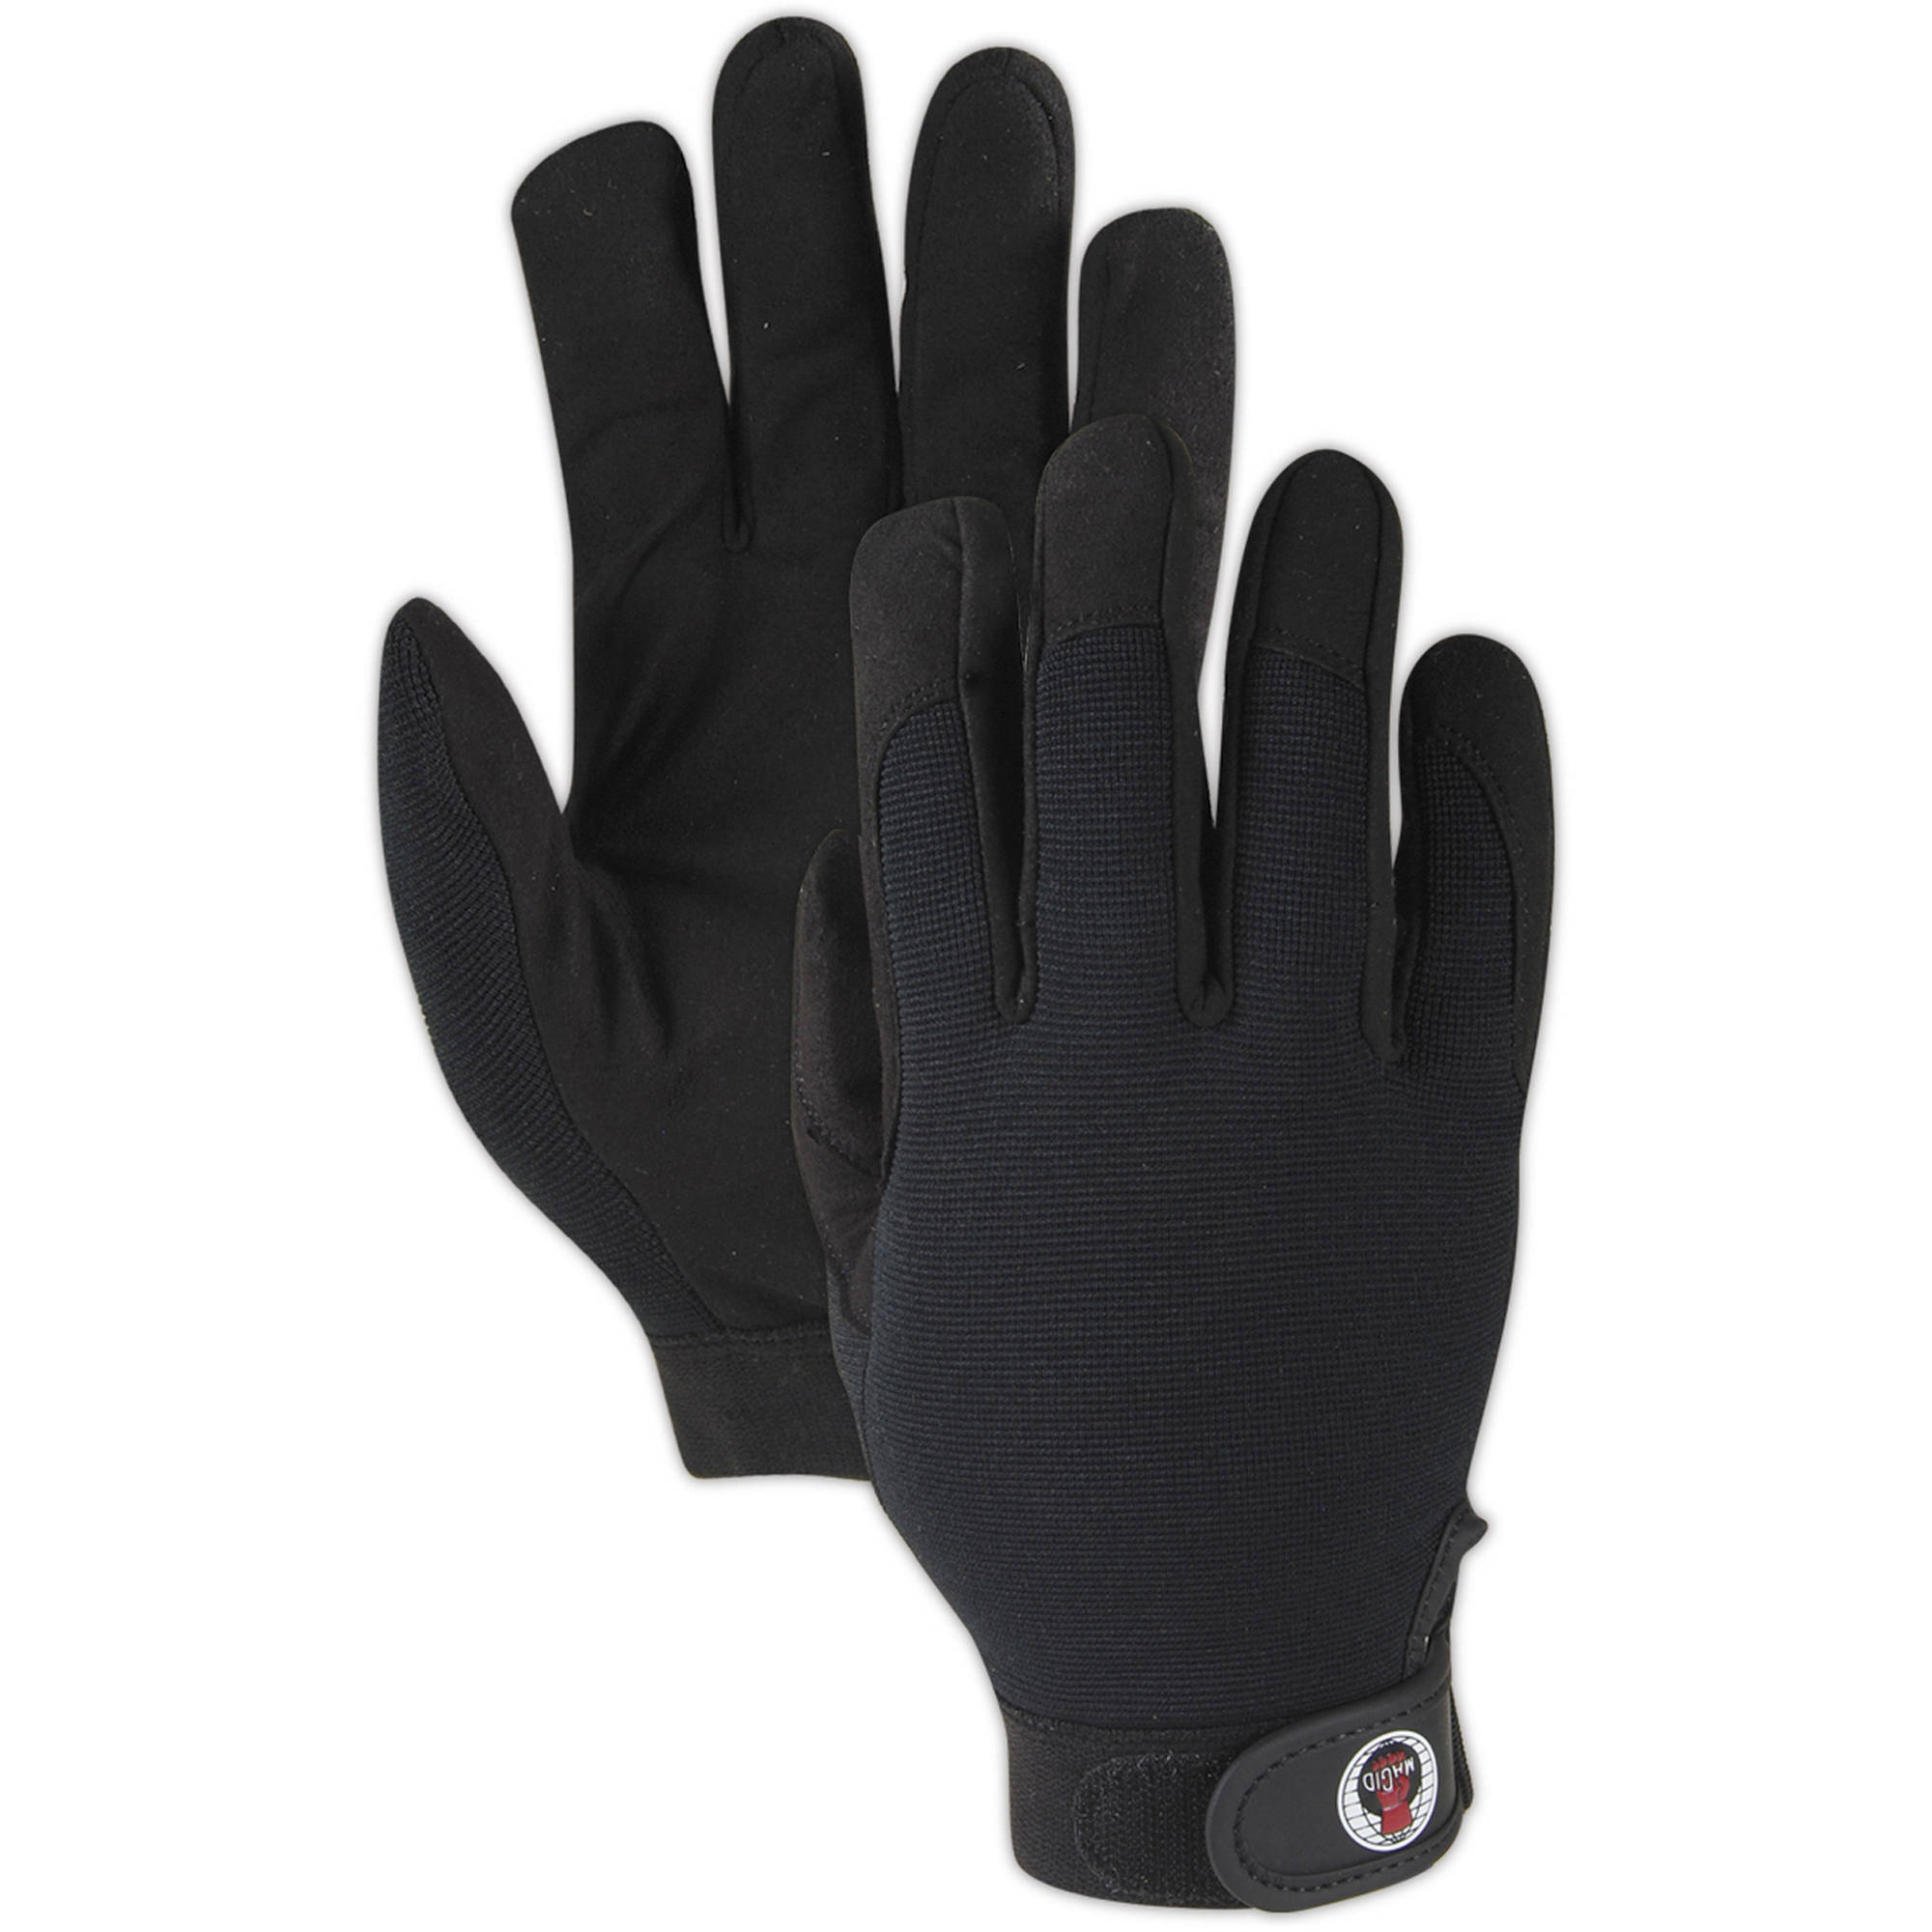 Magid Glove AG7000TXL Extra Large Work Glove with Spandex Back and Leather Palm